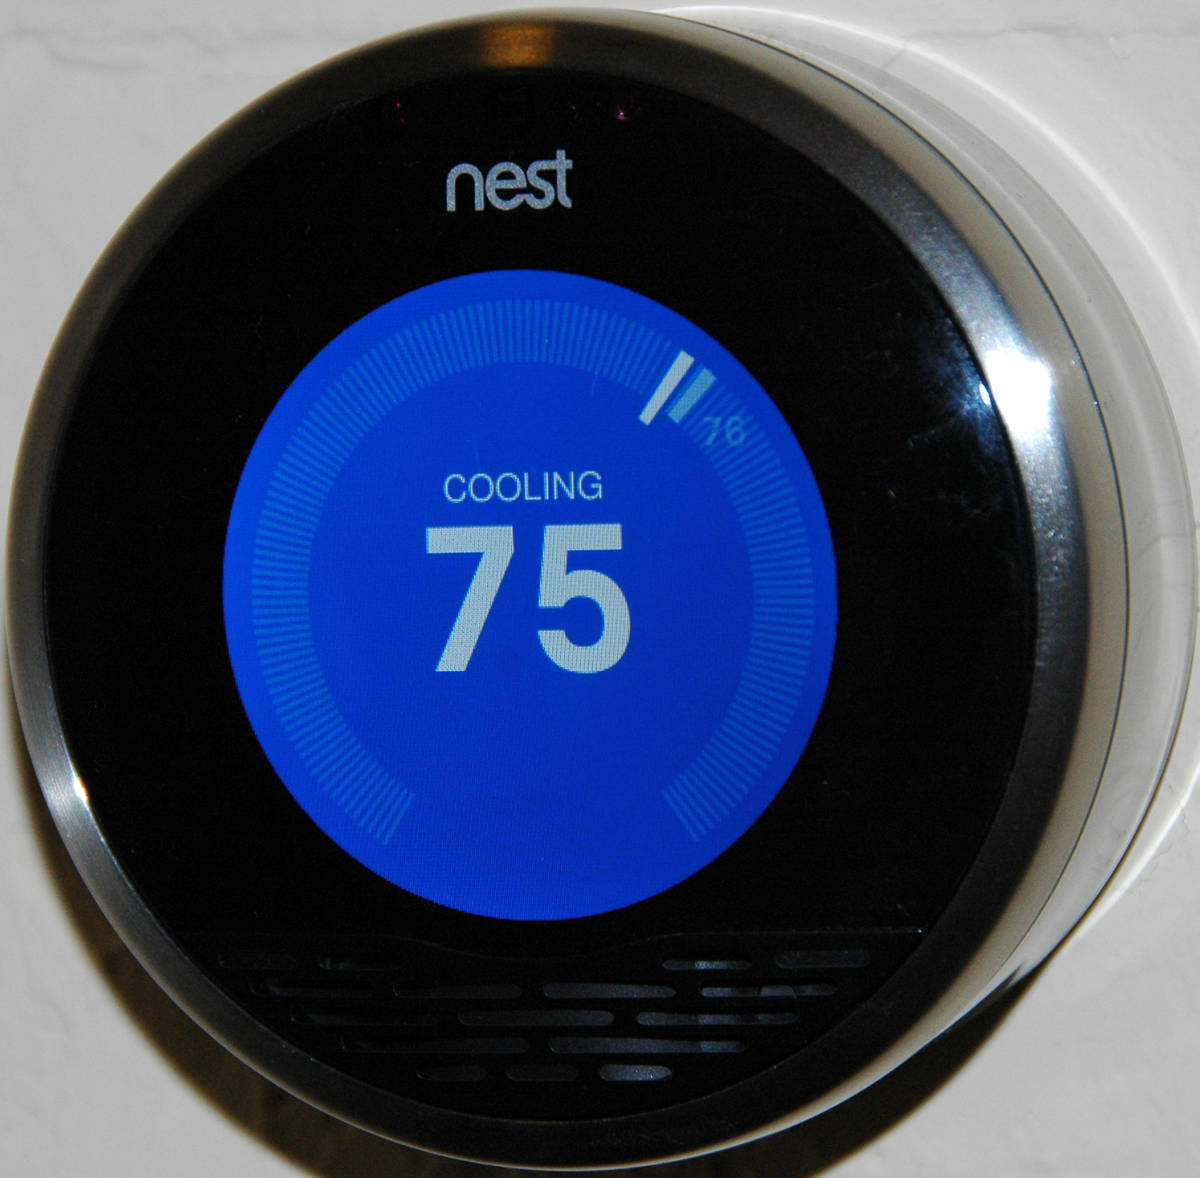 Nest learning thermostat wikipedia - Nest thermostat stylish home temperature control ...